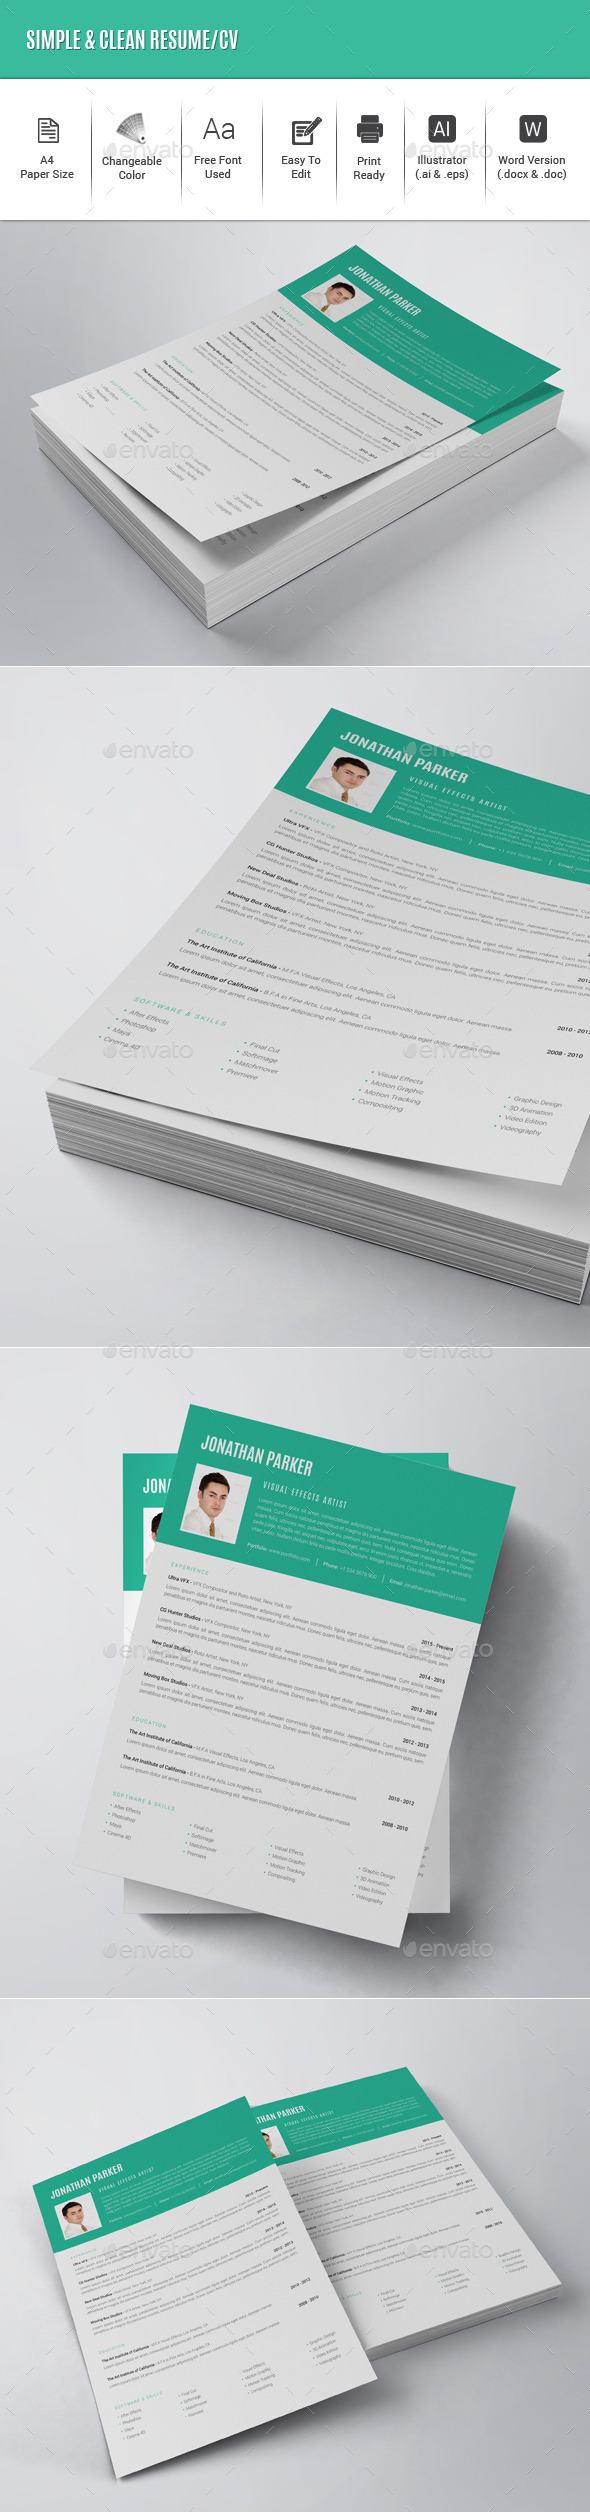 Simple & Clean Resume/CV - Resumes Stationery